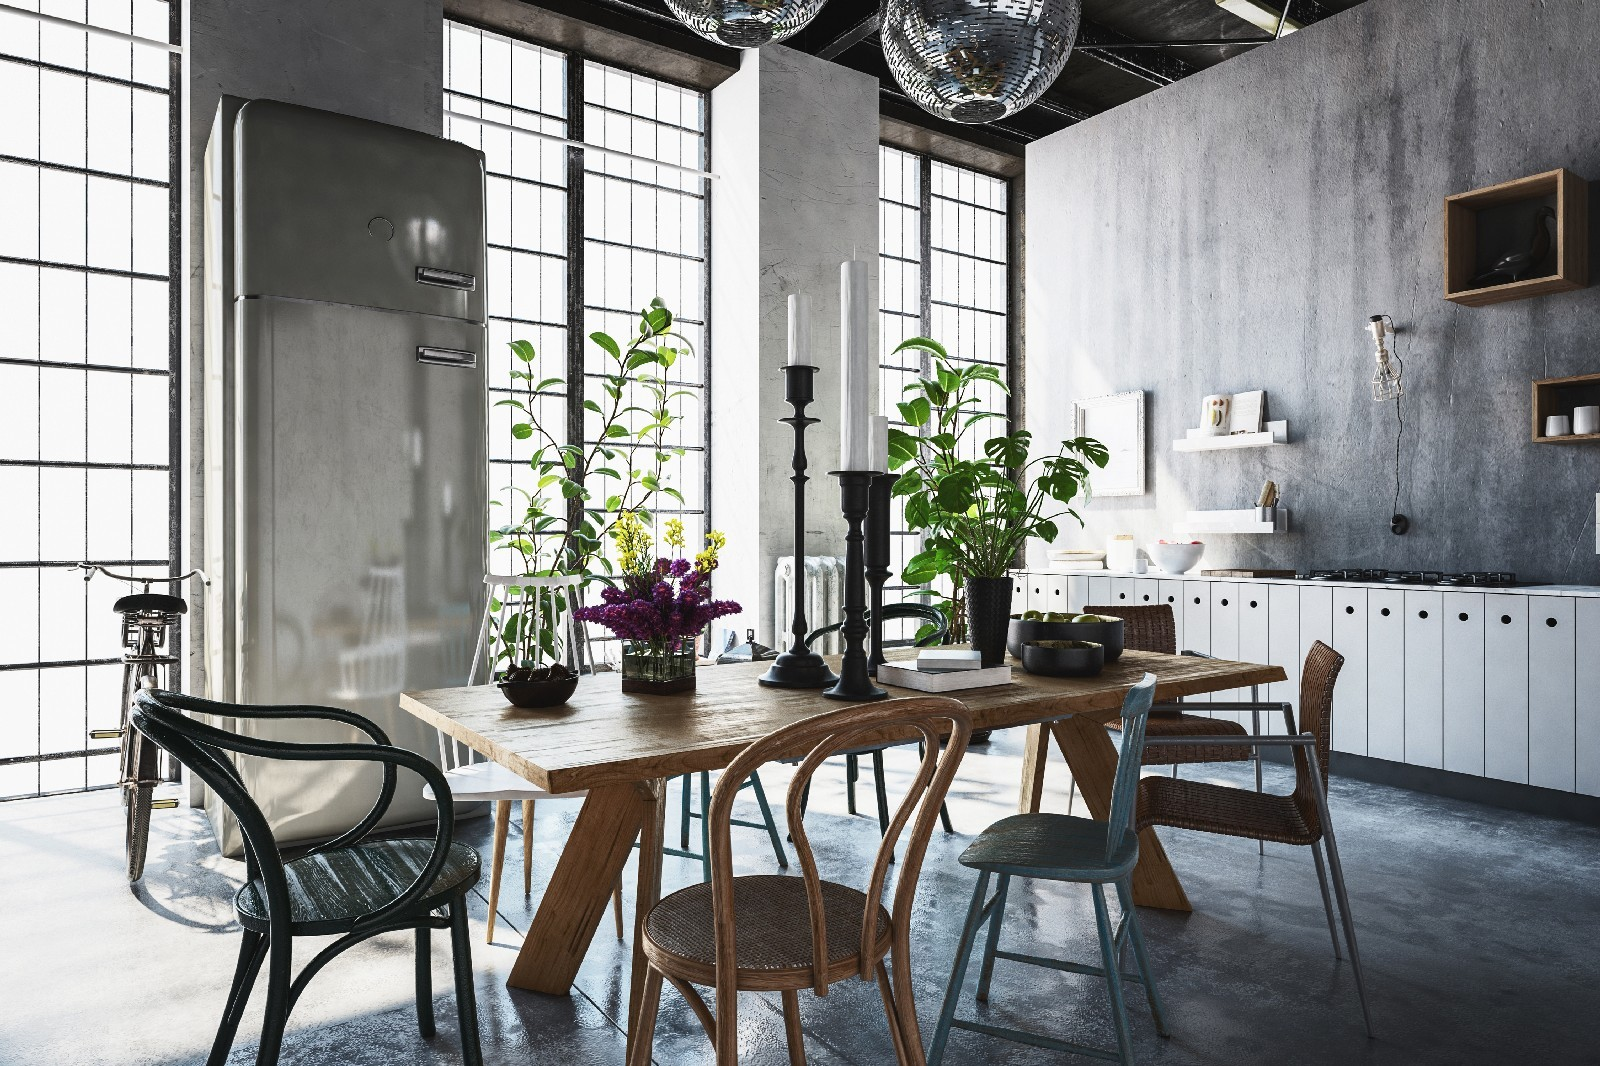 'Home Design Exhibition', Budapest, 21 – 23 September